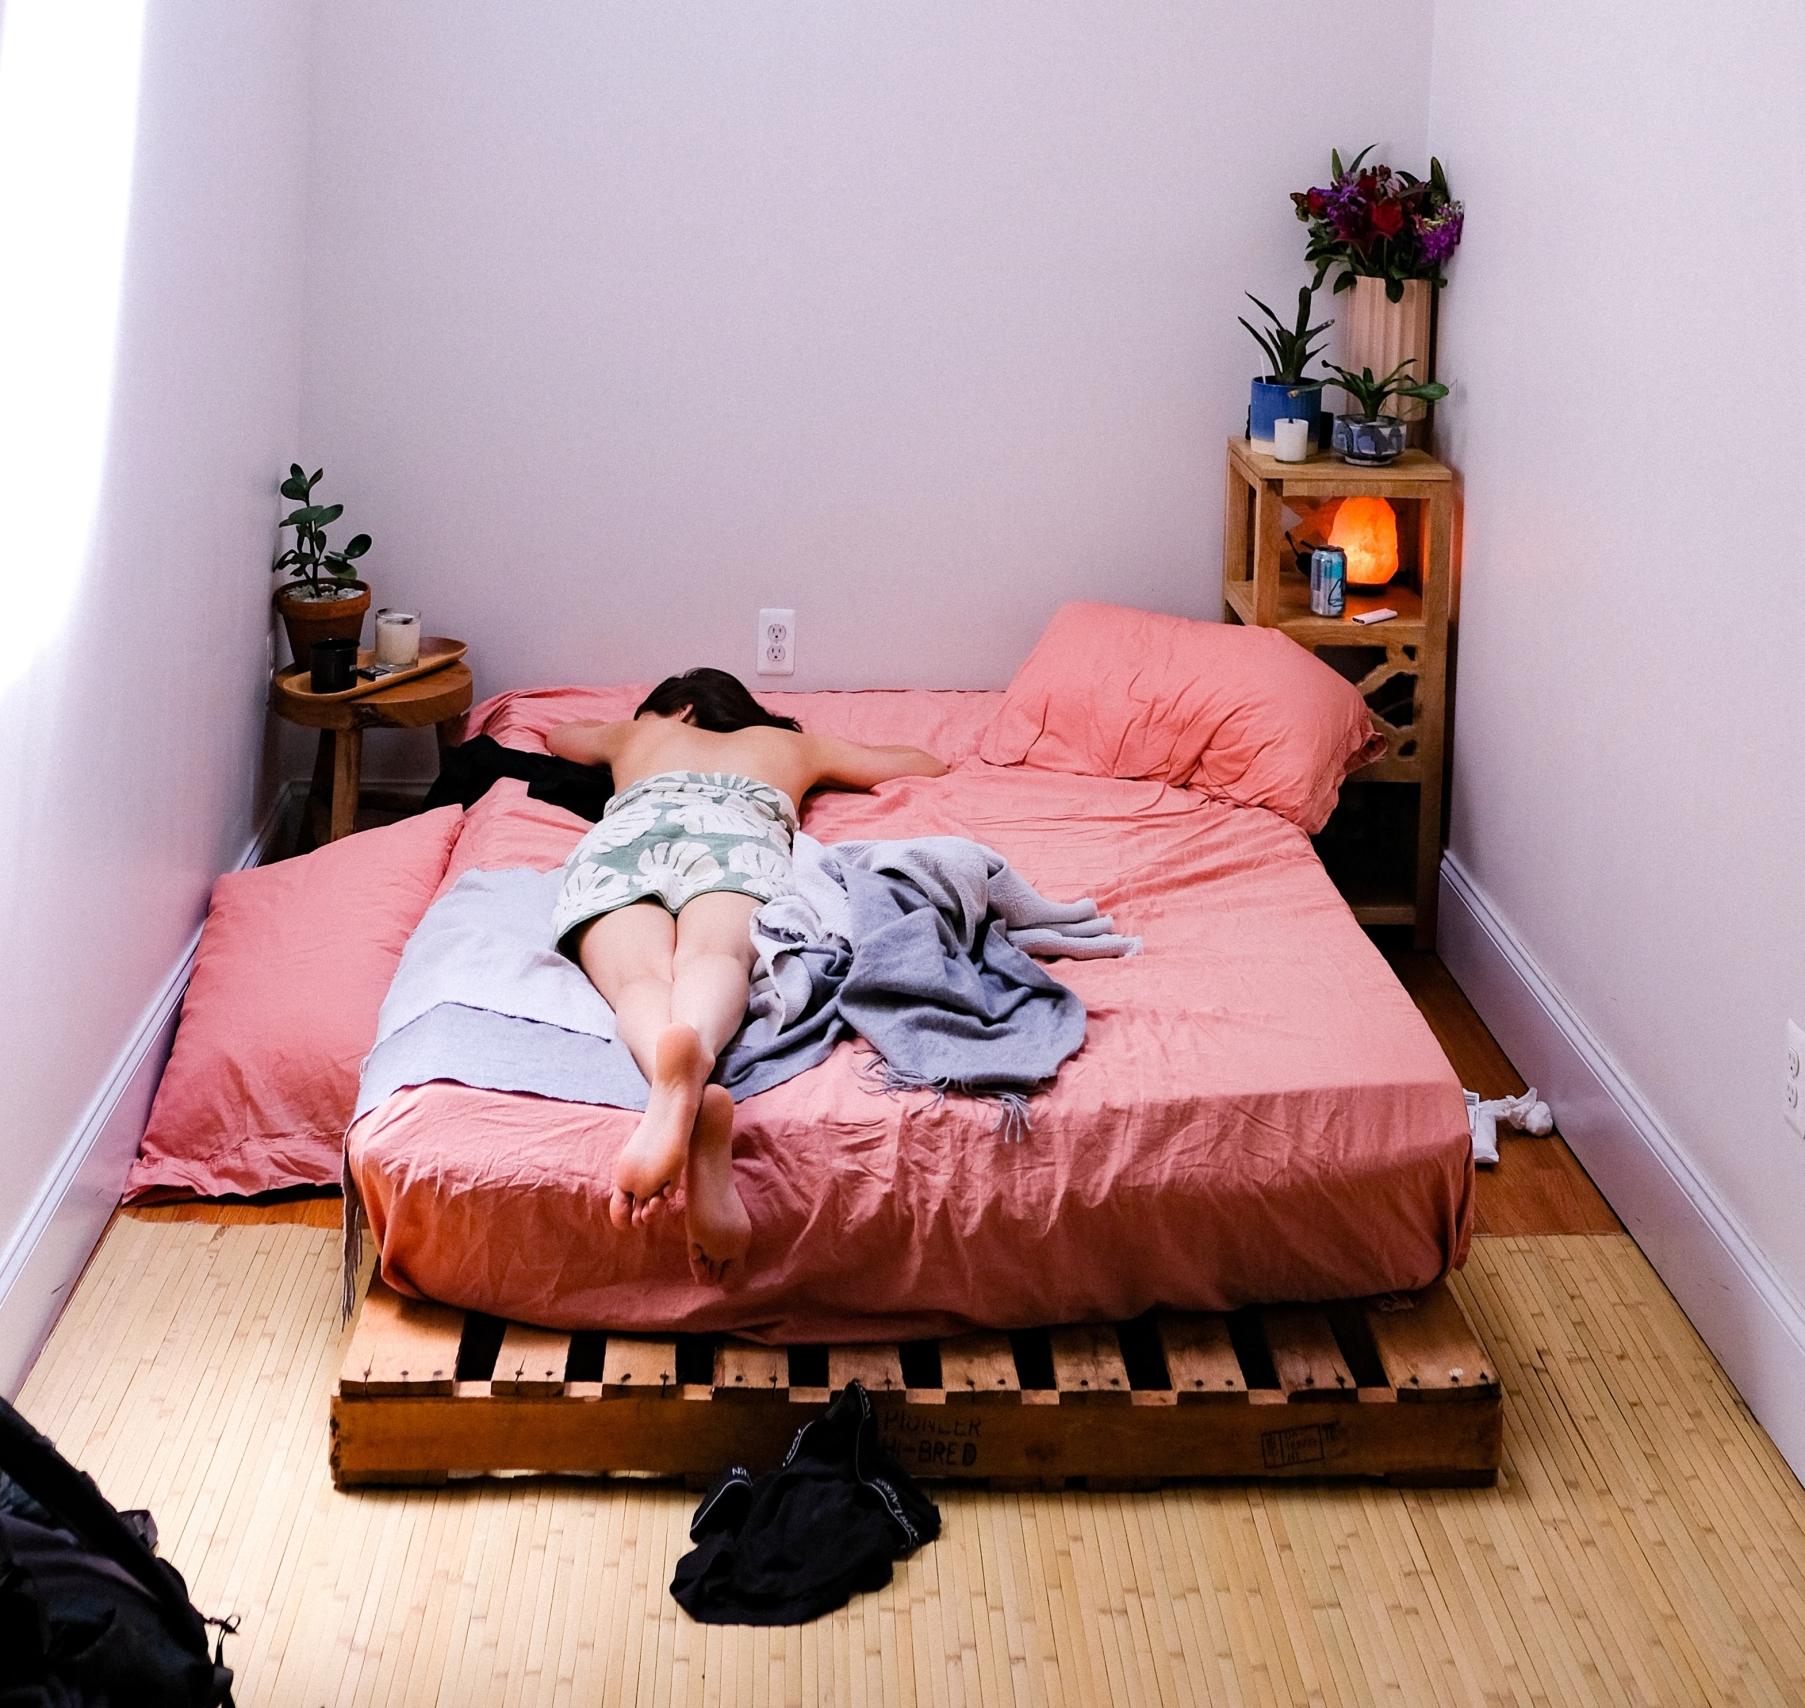 woman on bed - self-actualization through minimalism